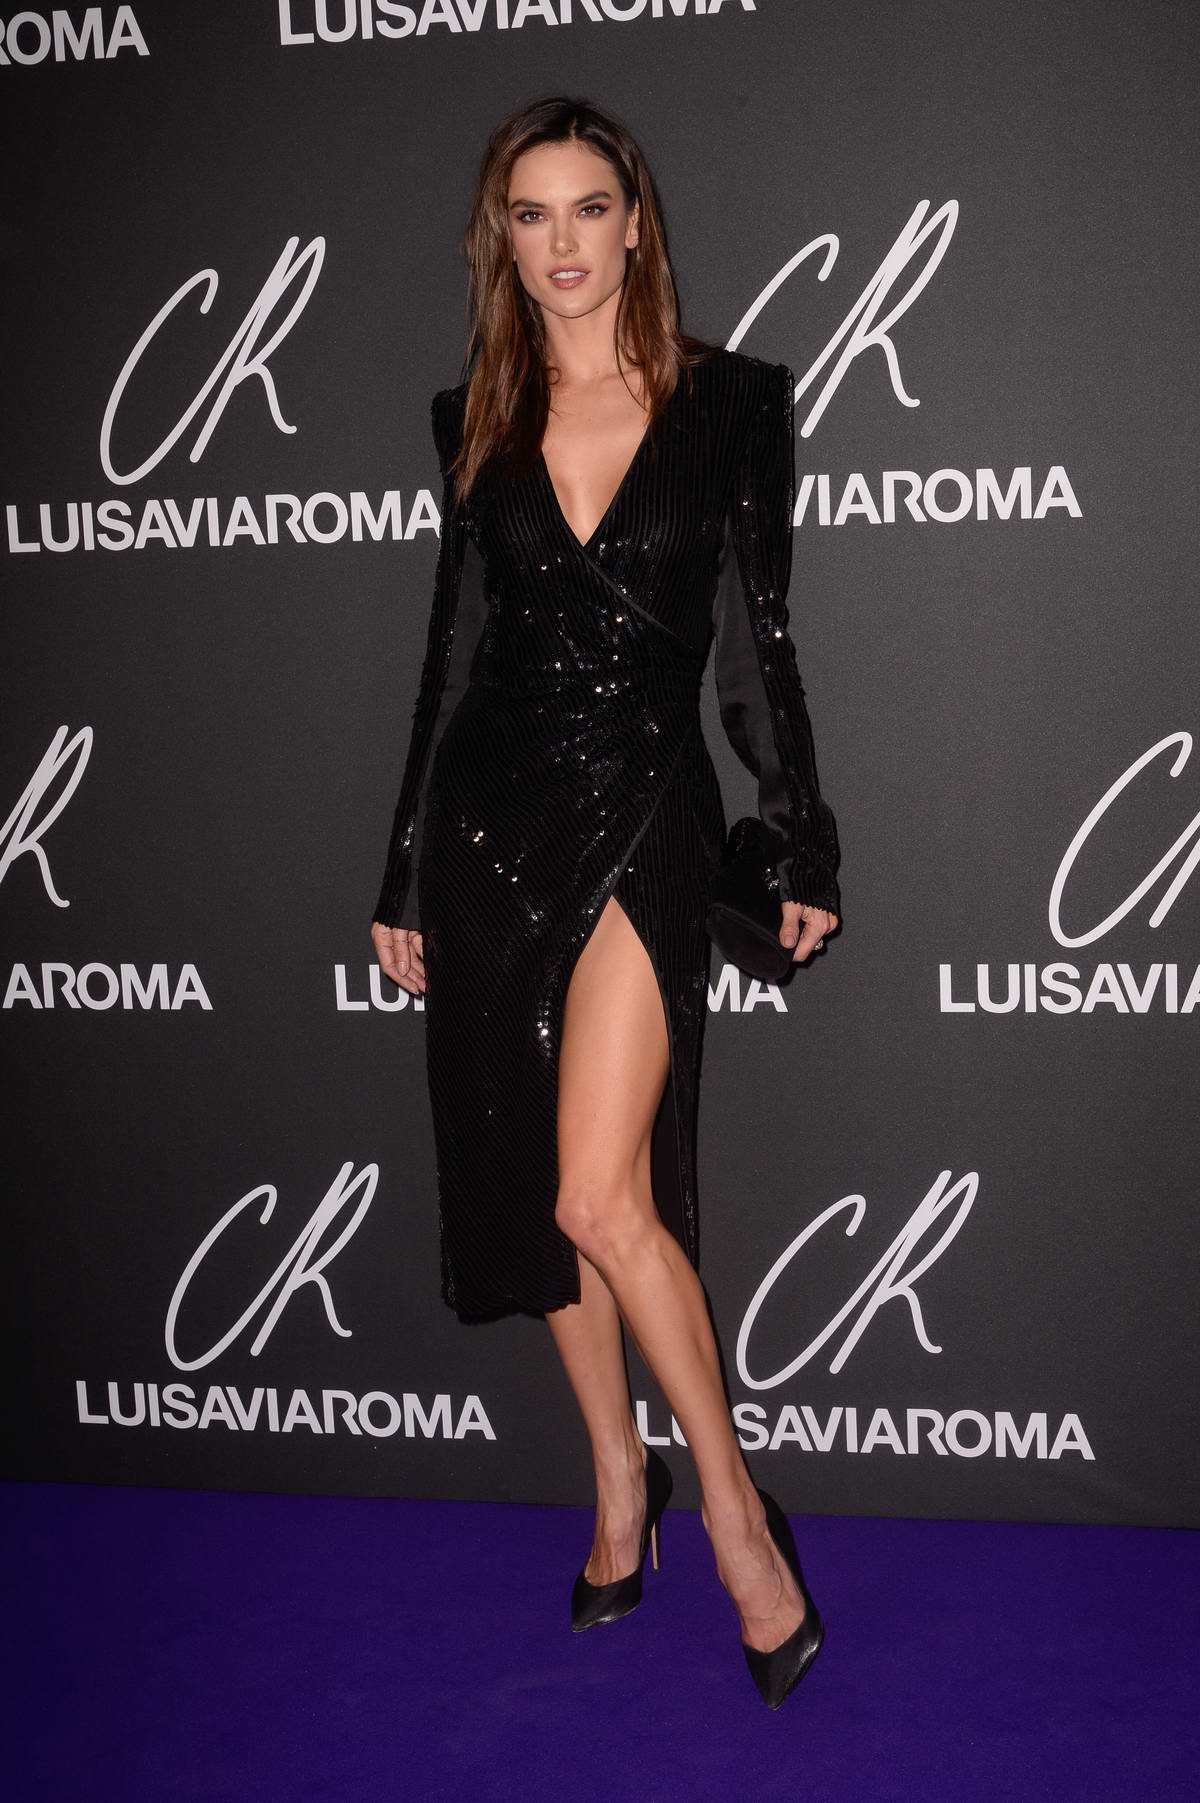 Alessandra Ambrosio attends the CR Fashion Book x Luisasaviaroma photocall during Paris Fashion Week in Paris, France